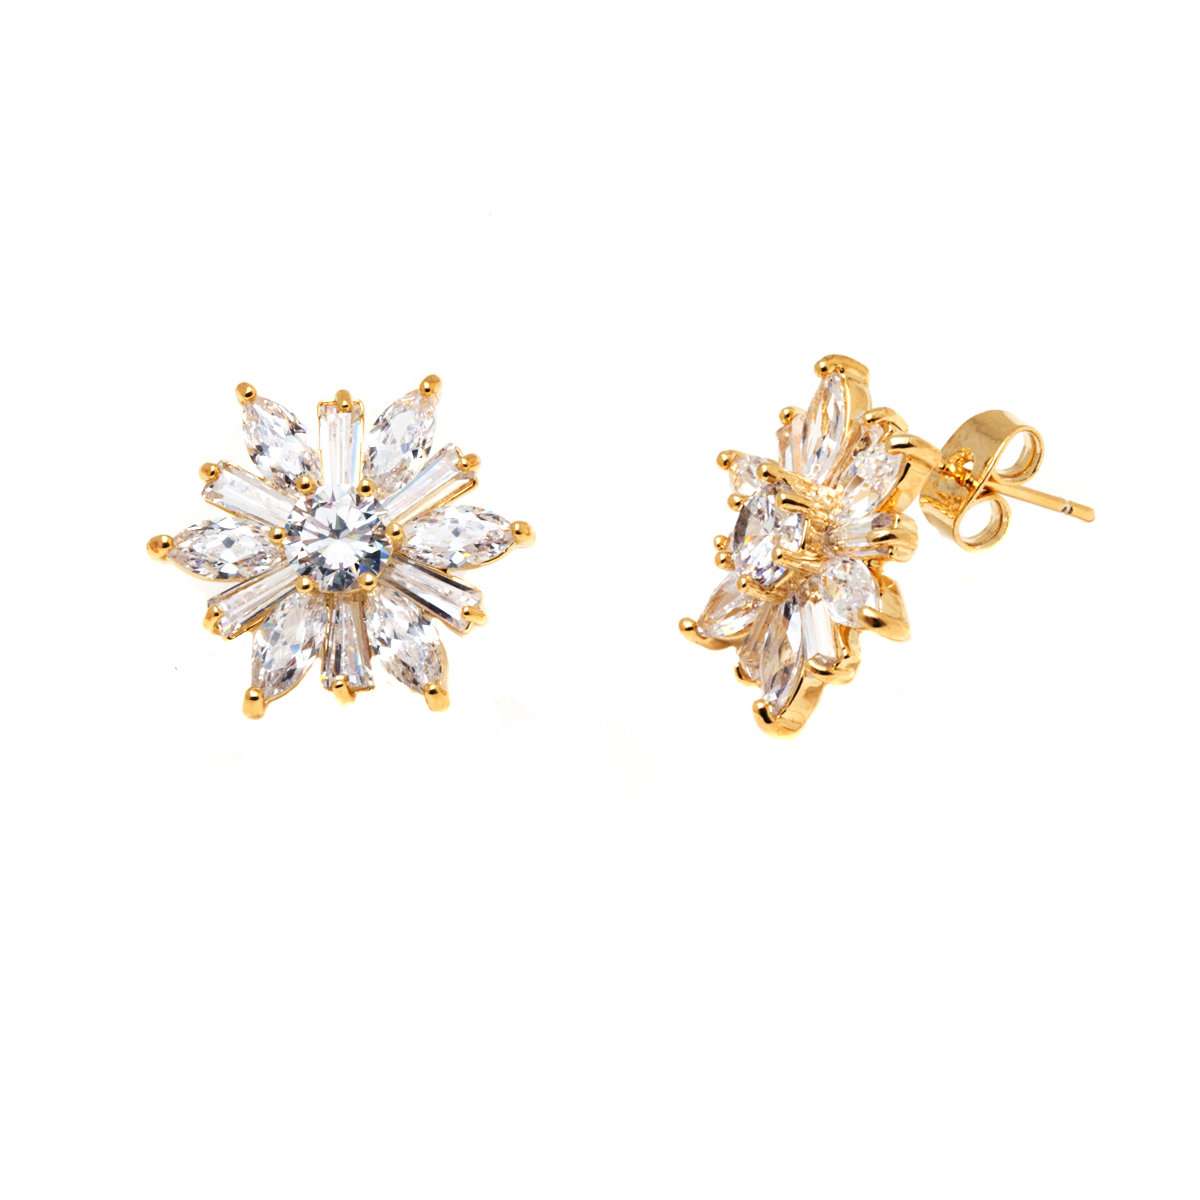 6db7e0ead 18K Gold Plated & Crystal Flower Stud Earrings